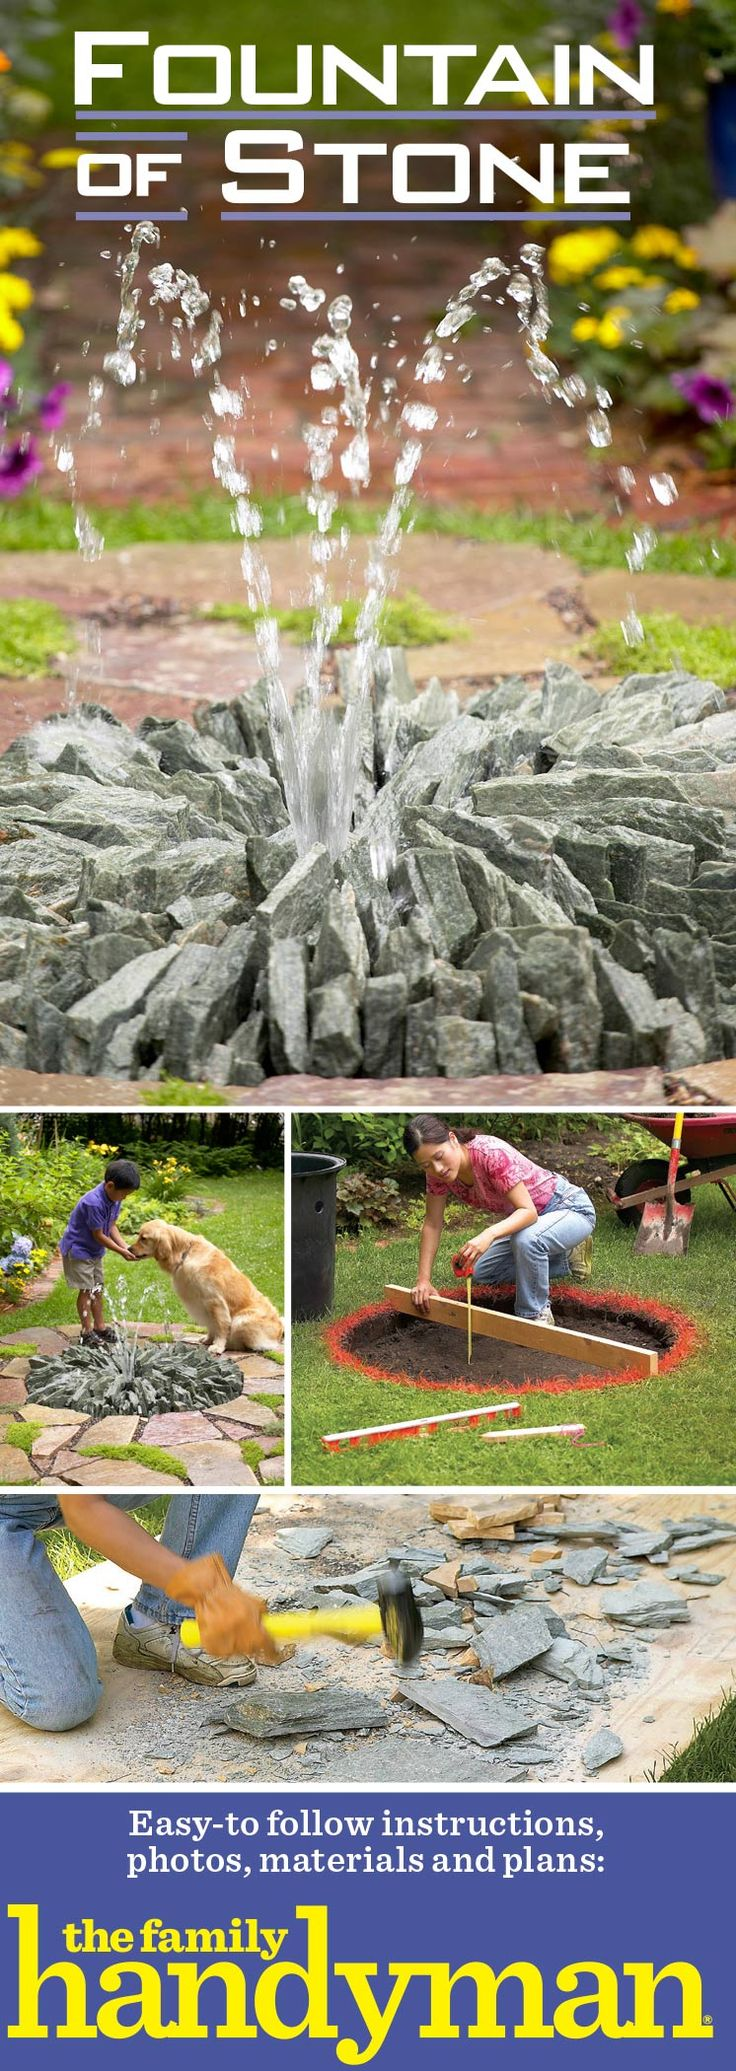 You can customize this design to suit your yard without changing the basic construction. Our fountain is about 4 ft. in diameter. You could make yours half as big or twice as big using the same materials and methods. To change the look of the fountain, you can use a different type of stone, arranged any way you like. Everything you need is available at garden and home centers. The cost of stone depends on the type you choose and where you live.